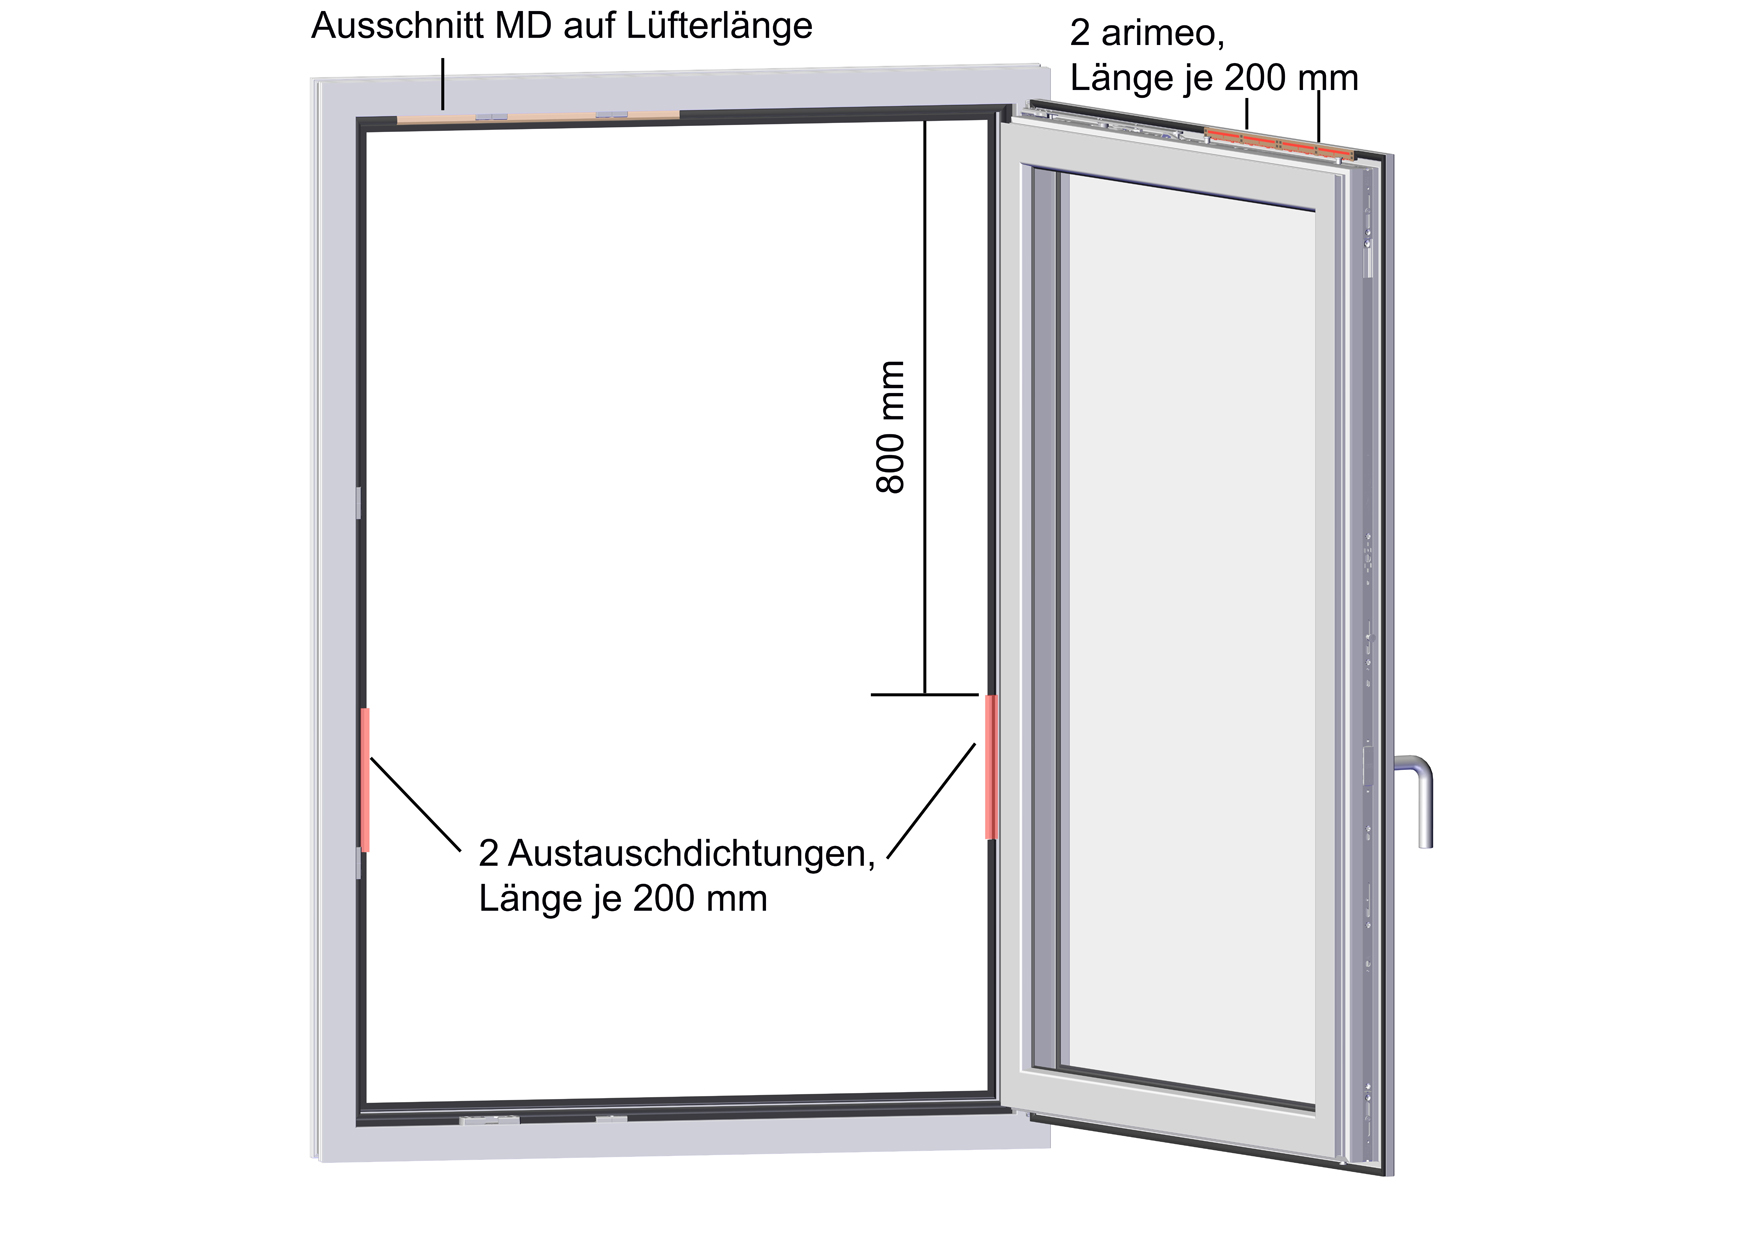 arimeo classic S Fensterfalzlüfter Einbauvariante double acoustic MD